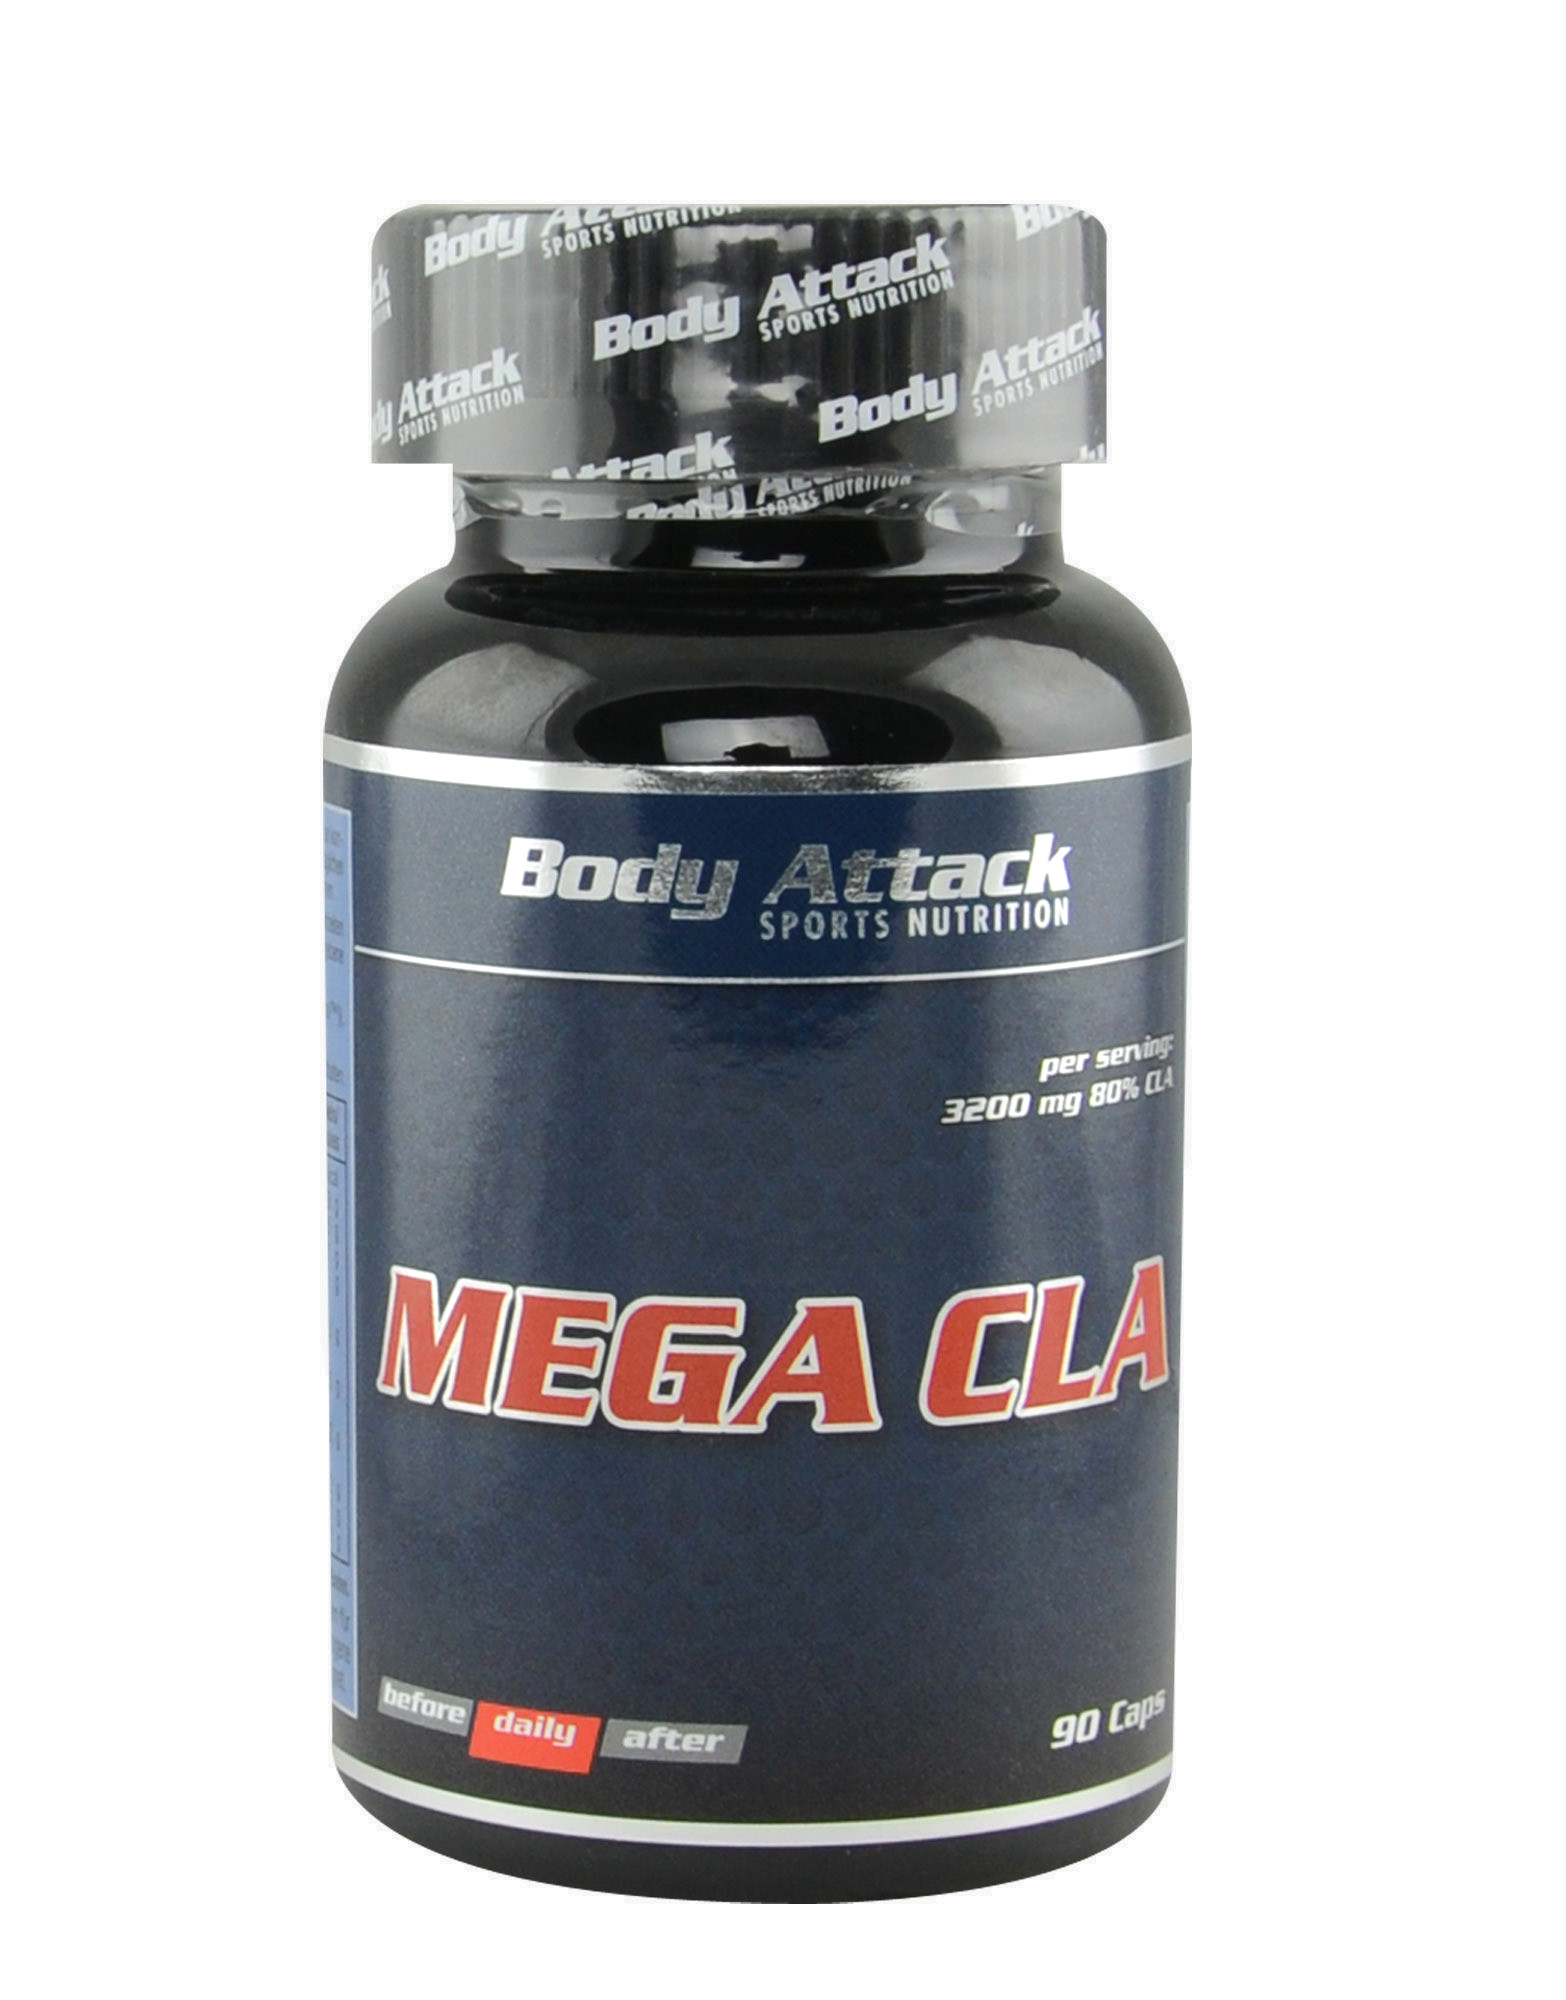 Mega CLA by Body attack, 90 capsules - iafstore com